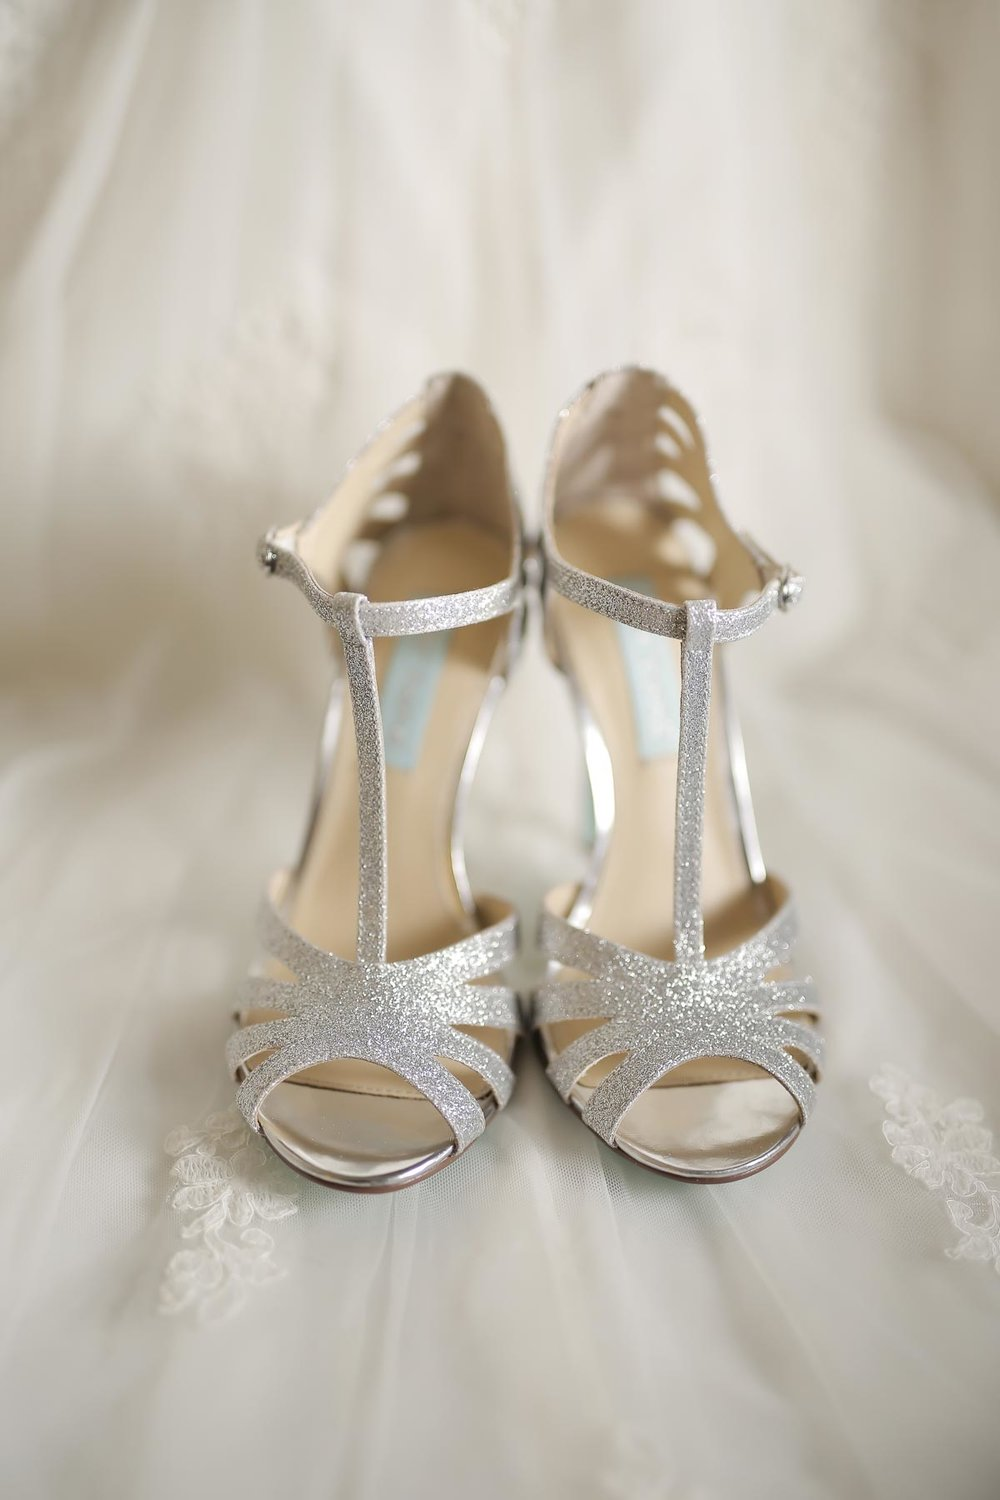 luxe-wedding-shoes_pepper_nix_photography-4.jpg